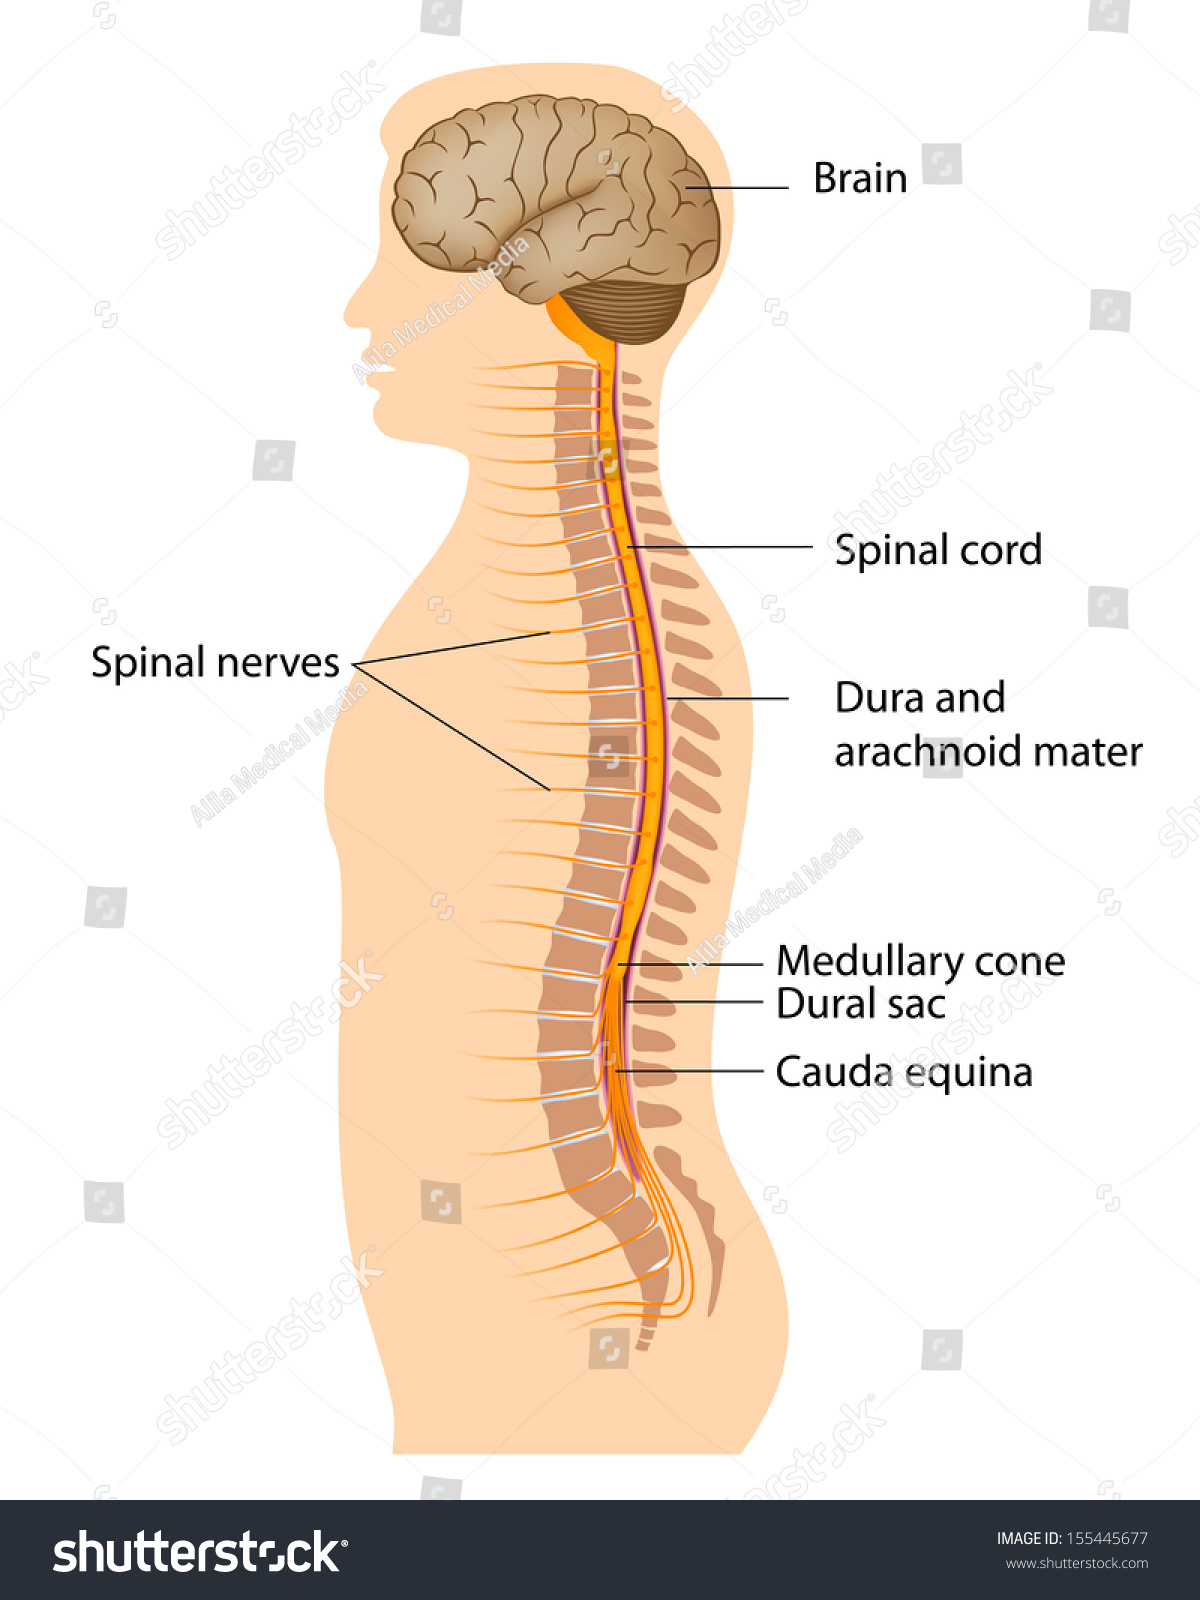 hight resolution of spinal cord labeled